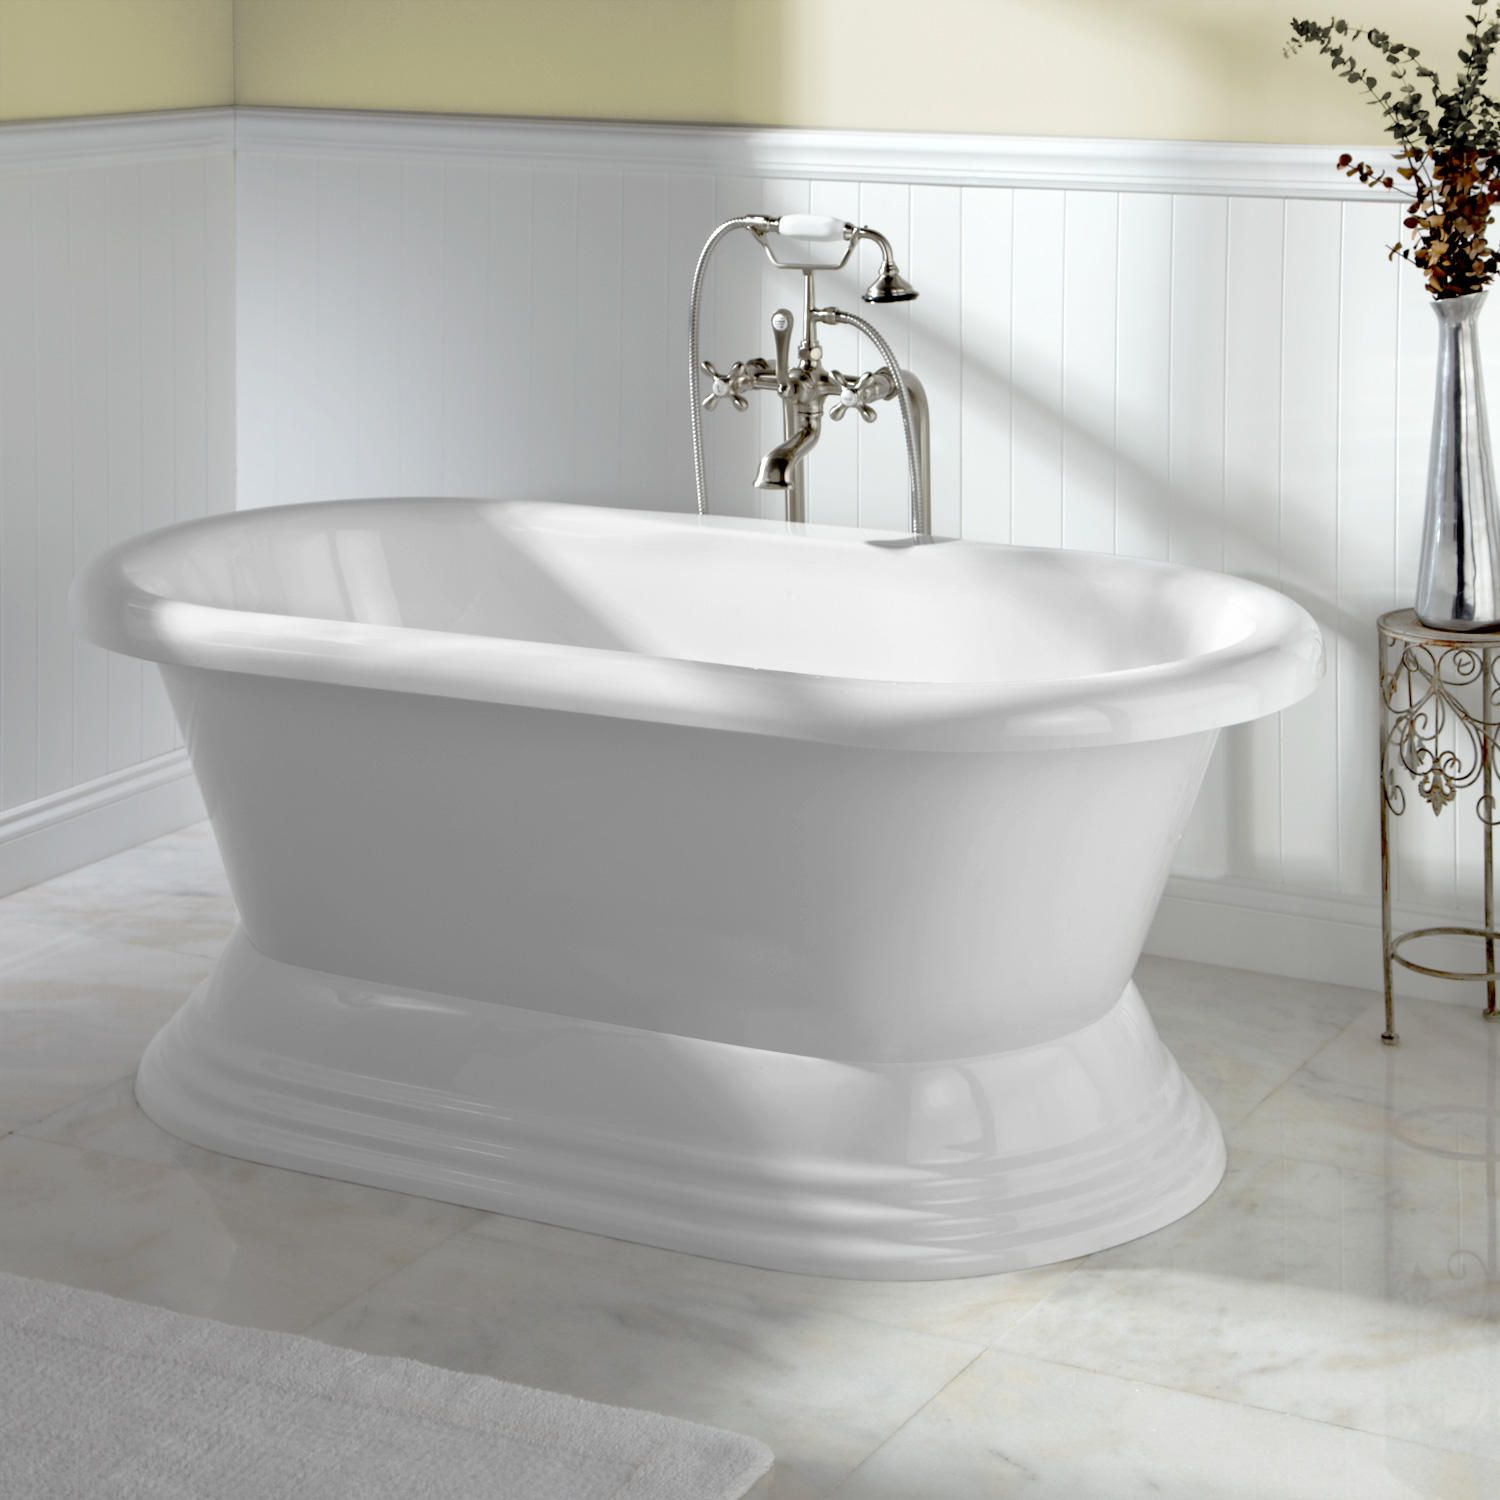 freestanding soaking tub for two. Exciting Stand Alone Tubs for Bathroom Decoration Ideas  Free Standing Bath Freestanding Soaking